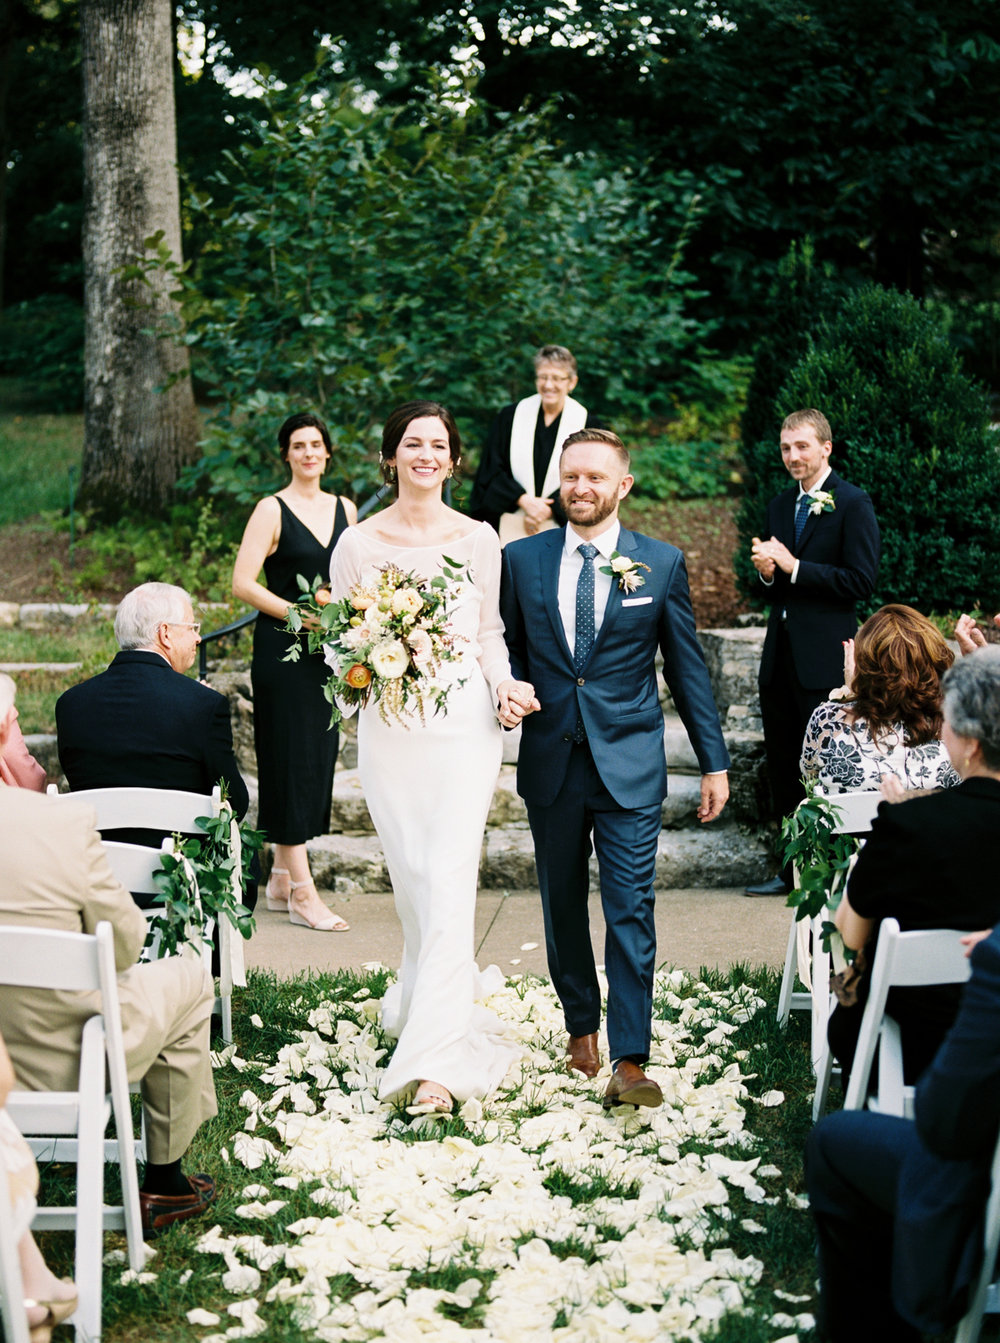 web ellen + paul cheekwood film documentary wedding photographers ©2016abigailbobophotography-34.jpg